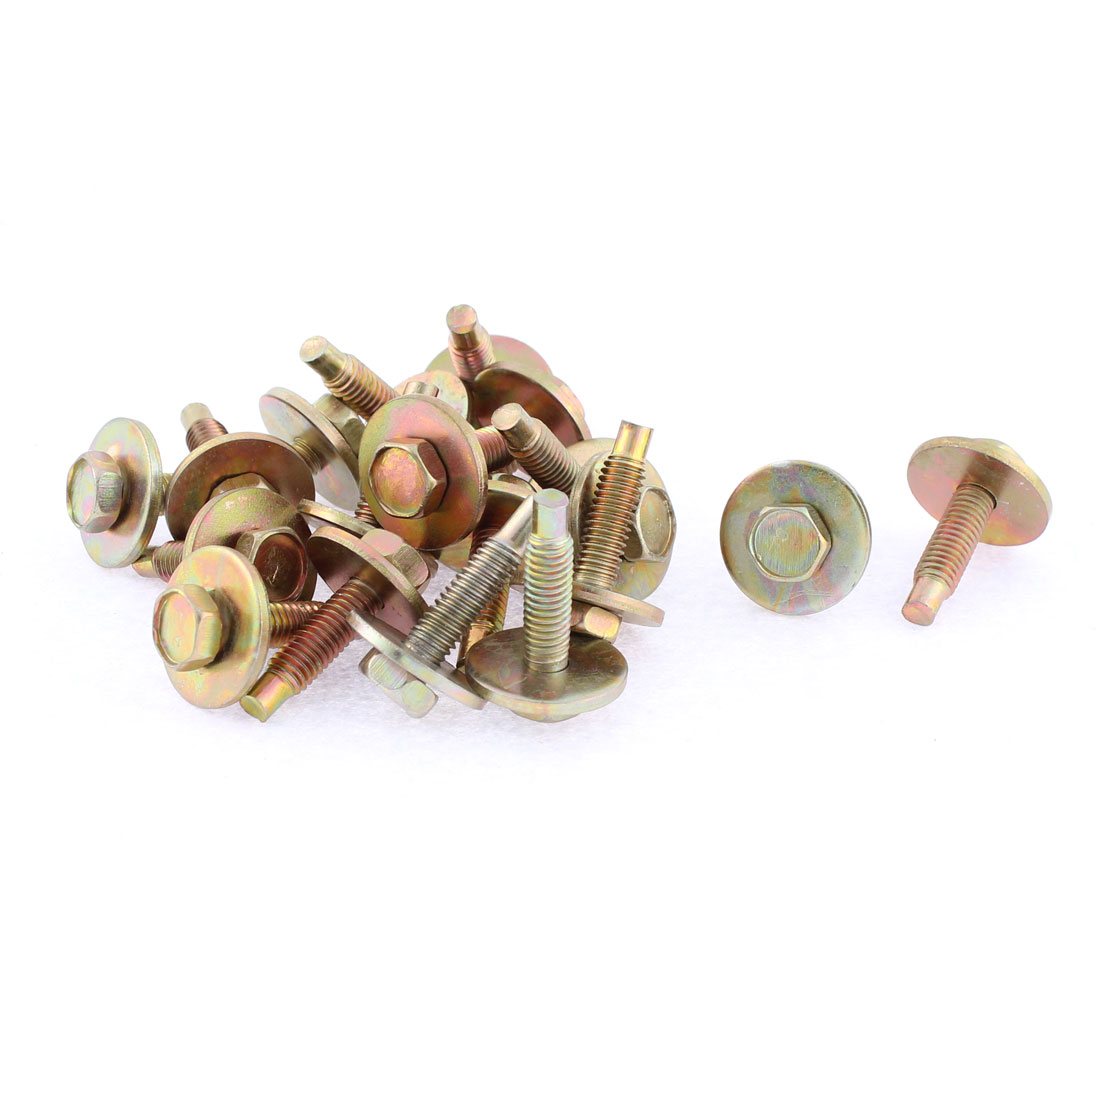 20Pcs Bronze Tone Car Metal Screw Body Fender Retainer Clips